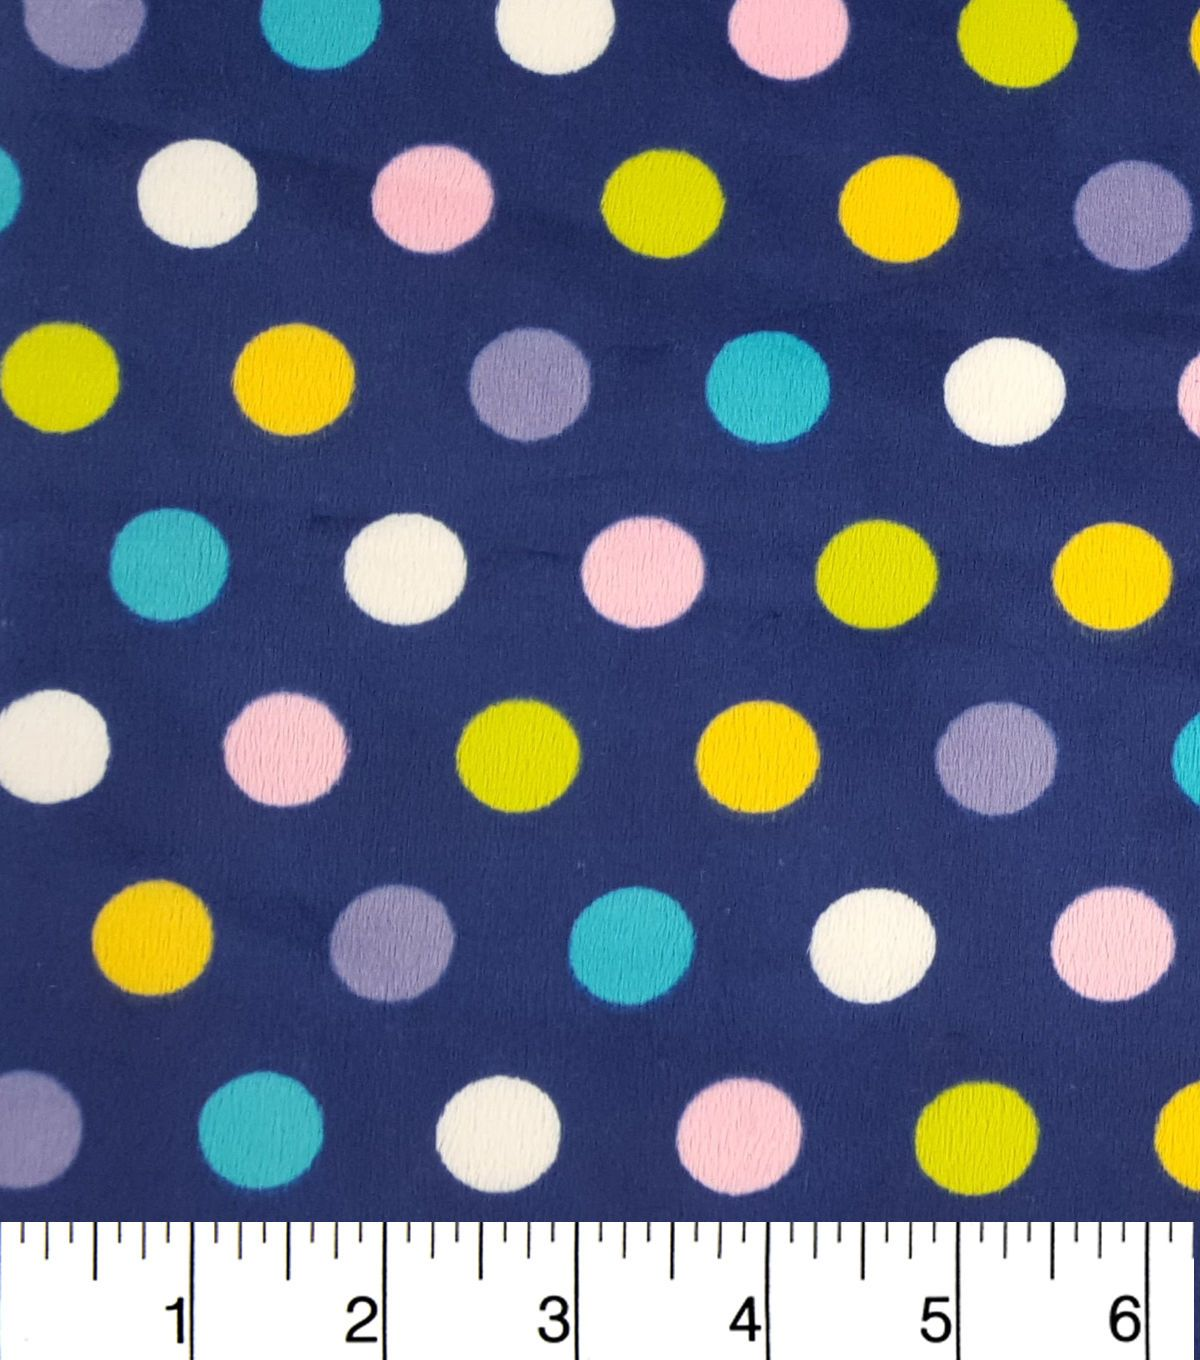 Soft n comfy fleece fabricfresh dots fabrics and products